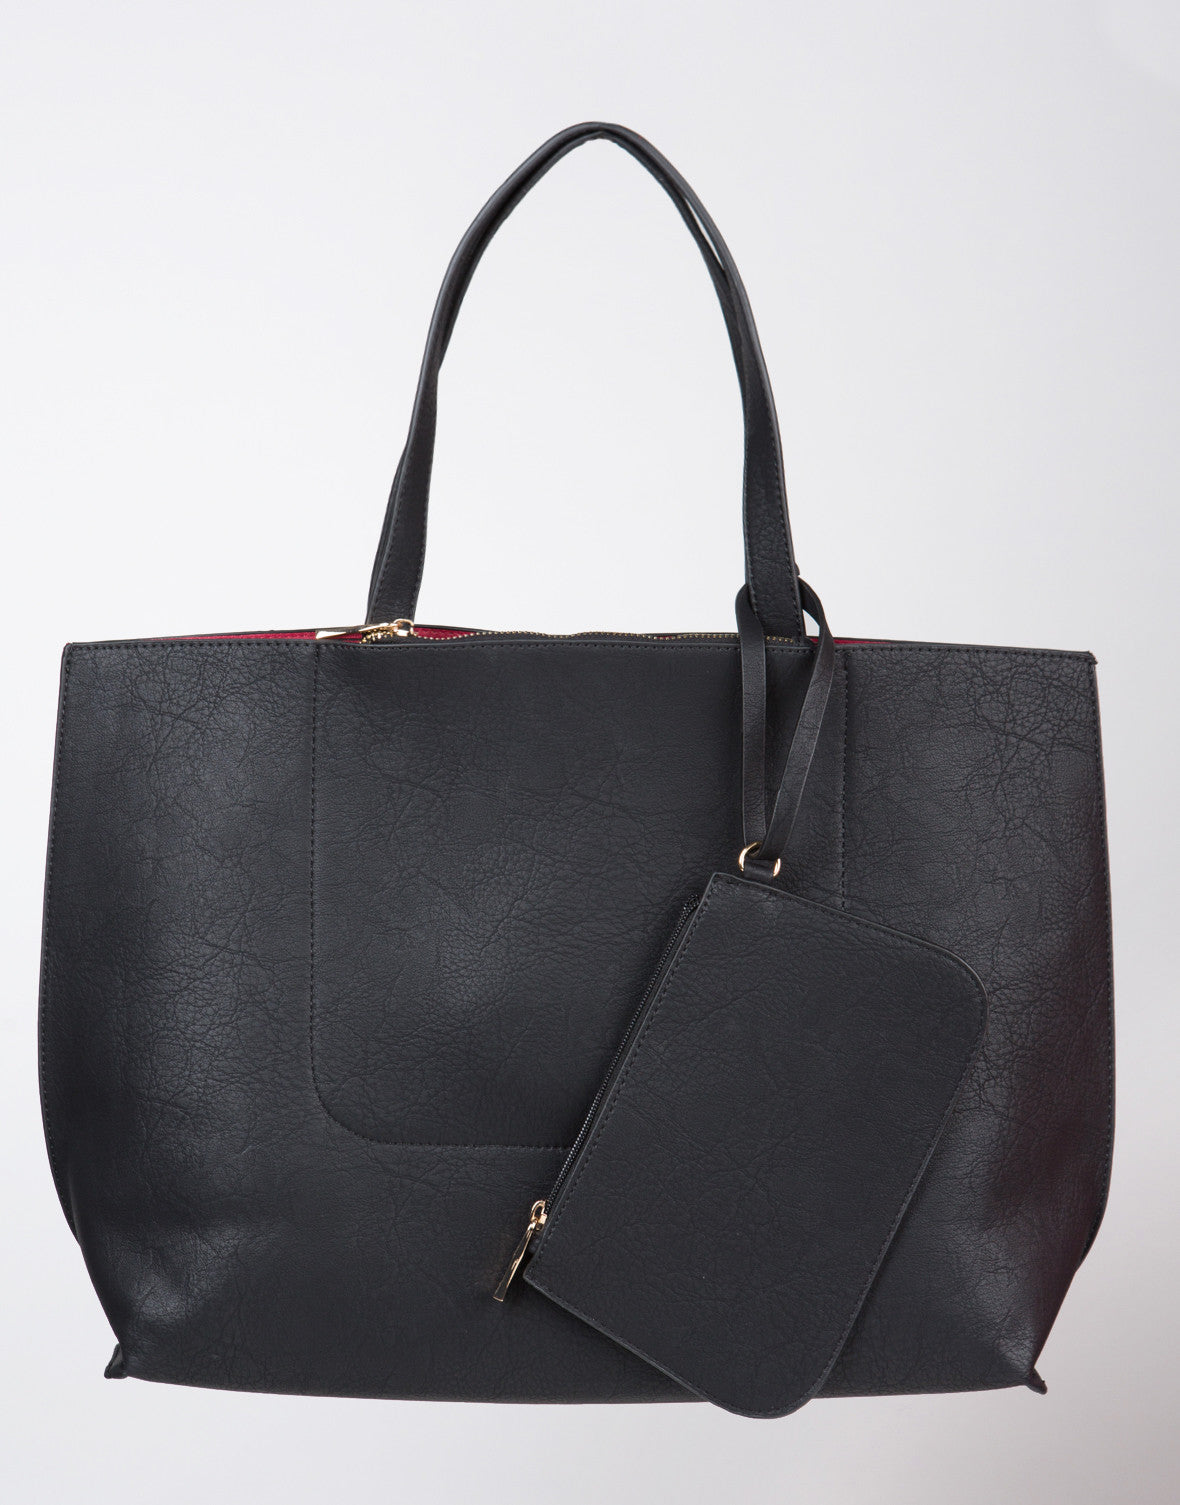 Front View of Faux Leather Tote Bag